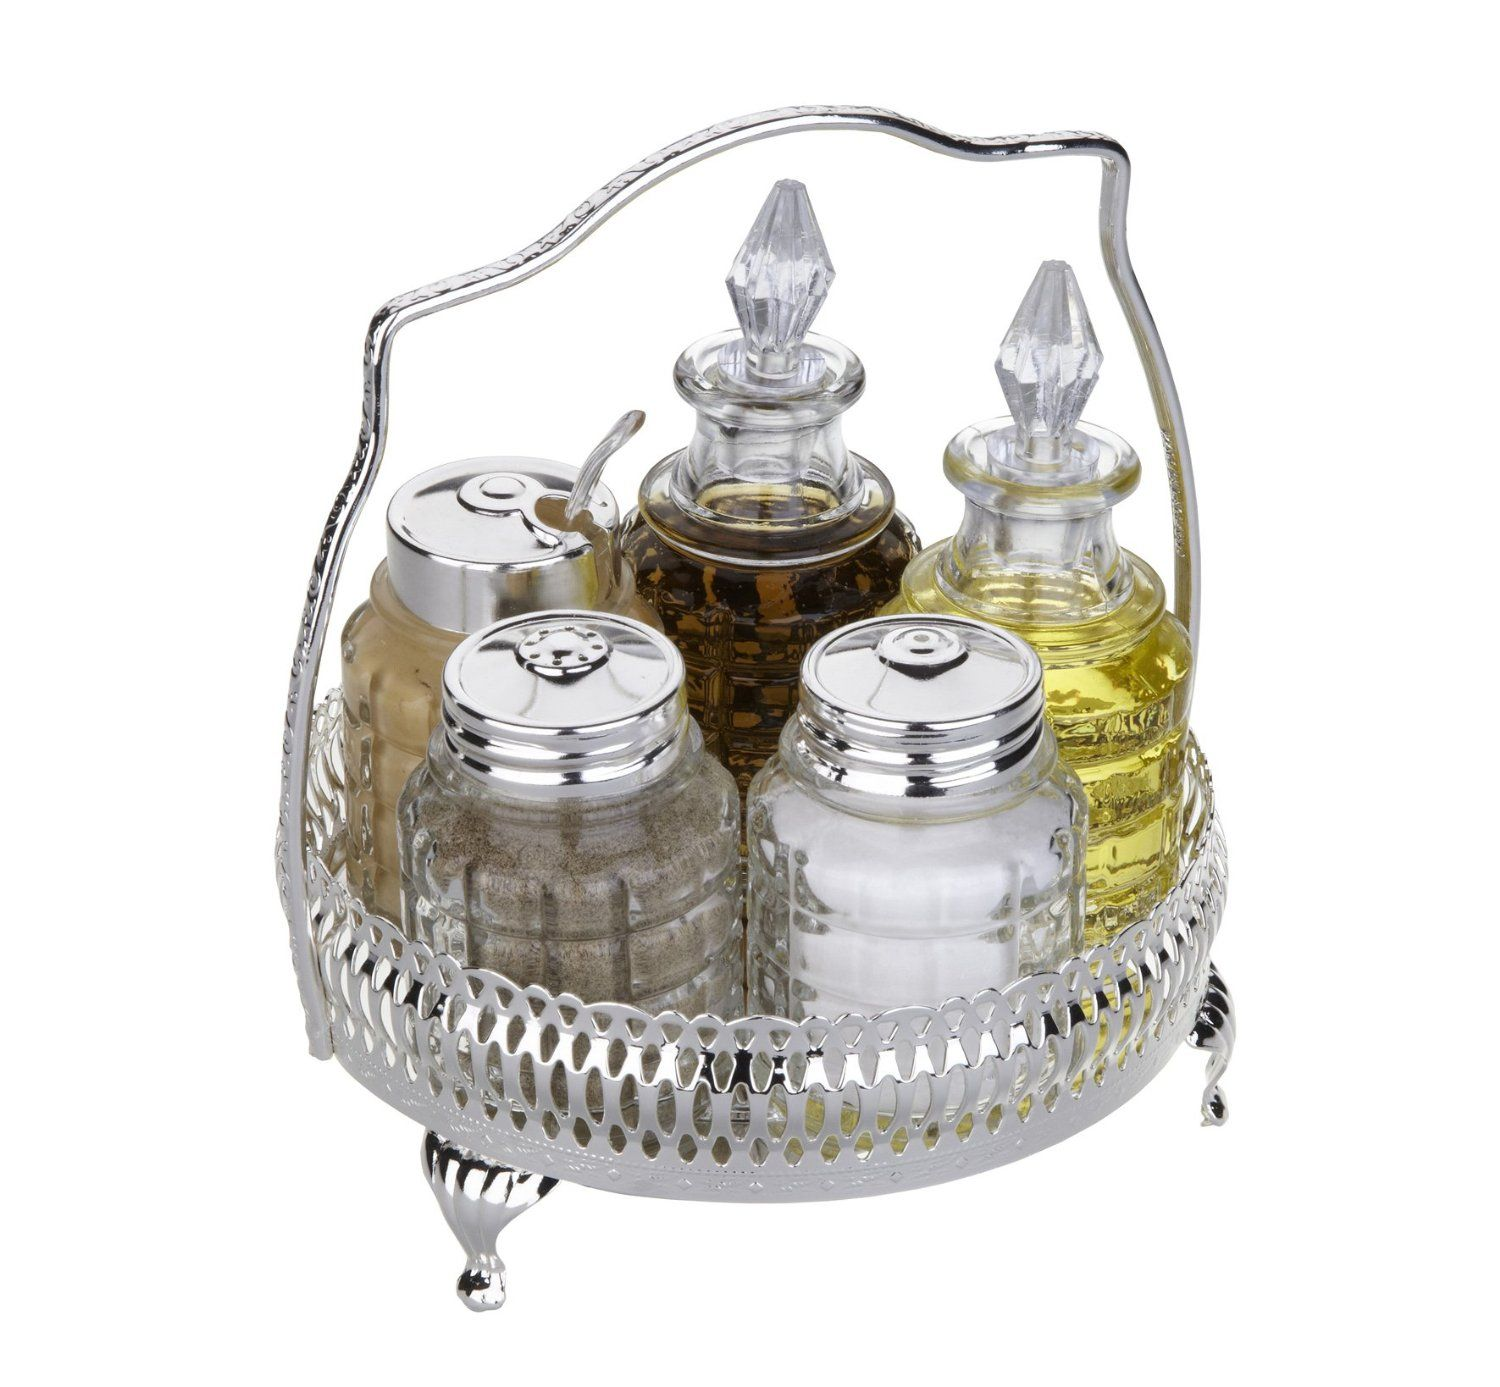 Cruet Set British with special finish that never needs Silver polishing includes salt pepper mustard oil vinegar: Amazon.co.uk: Kitchen & Home